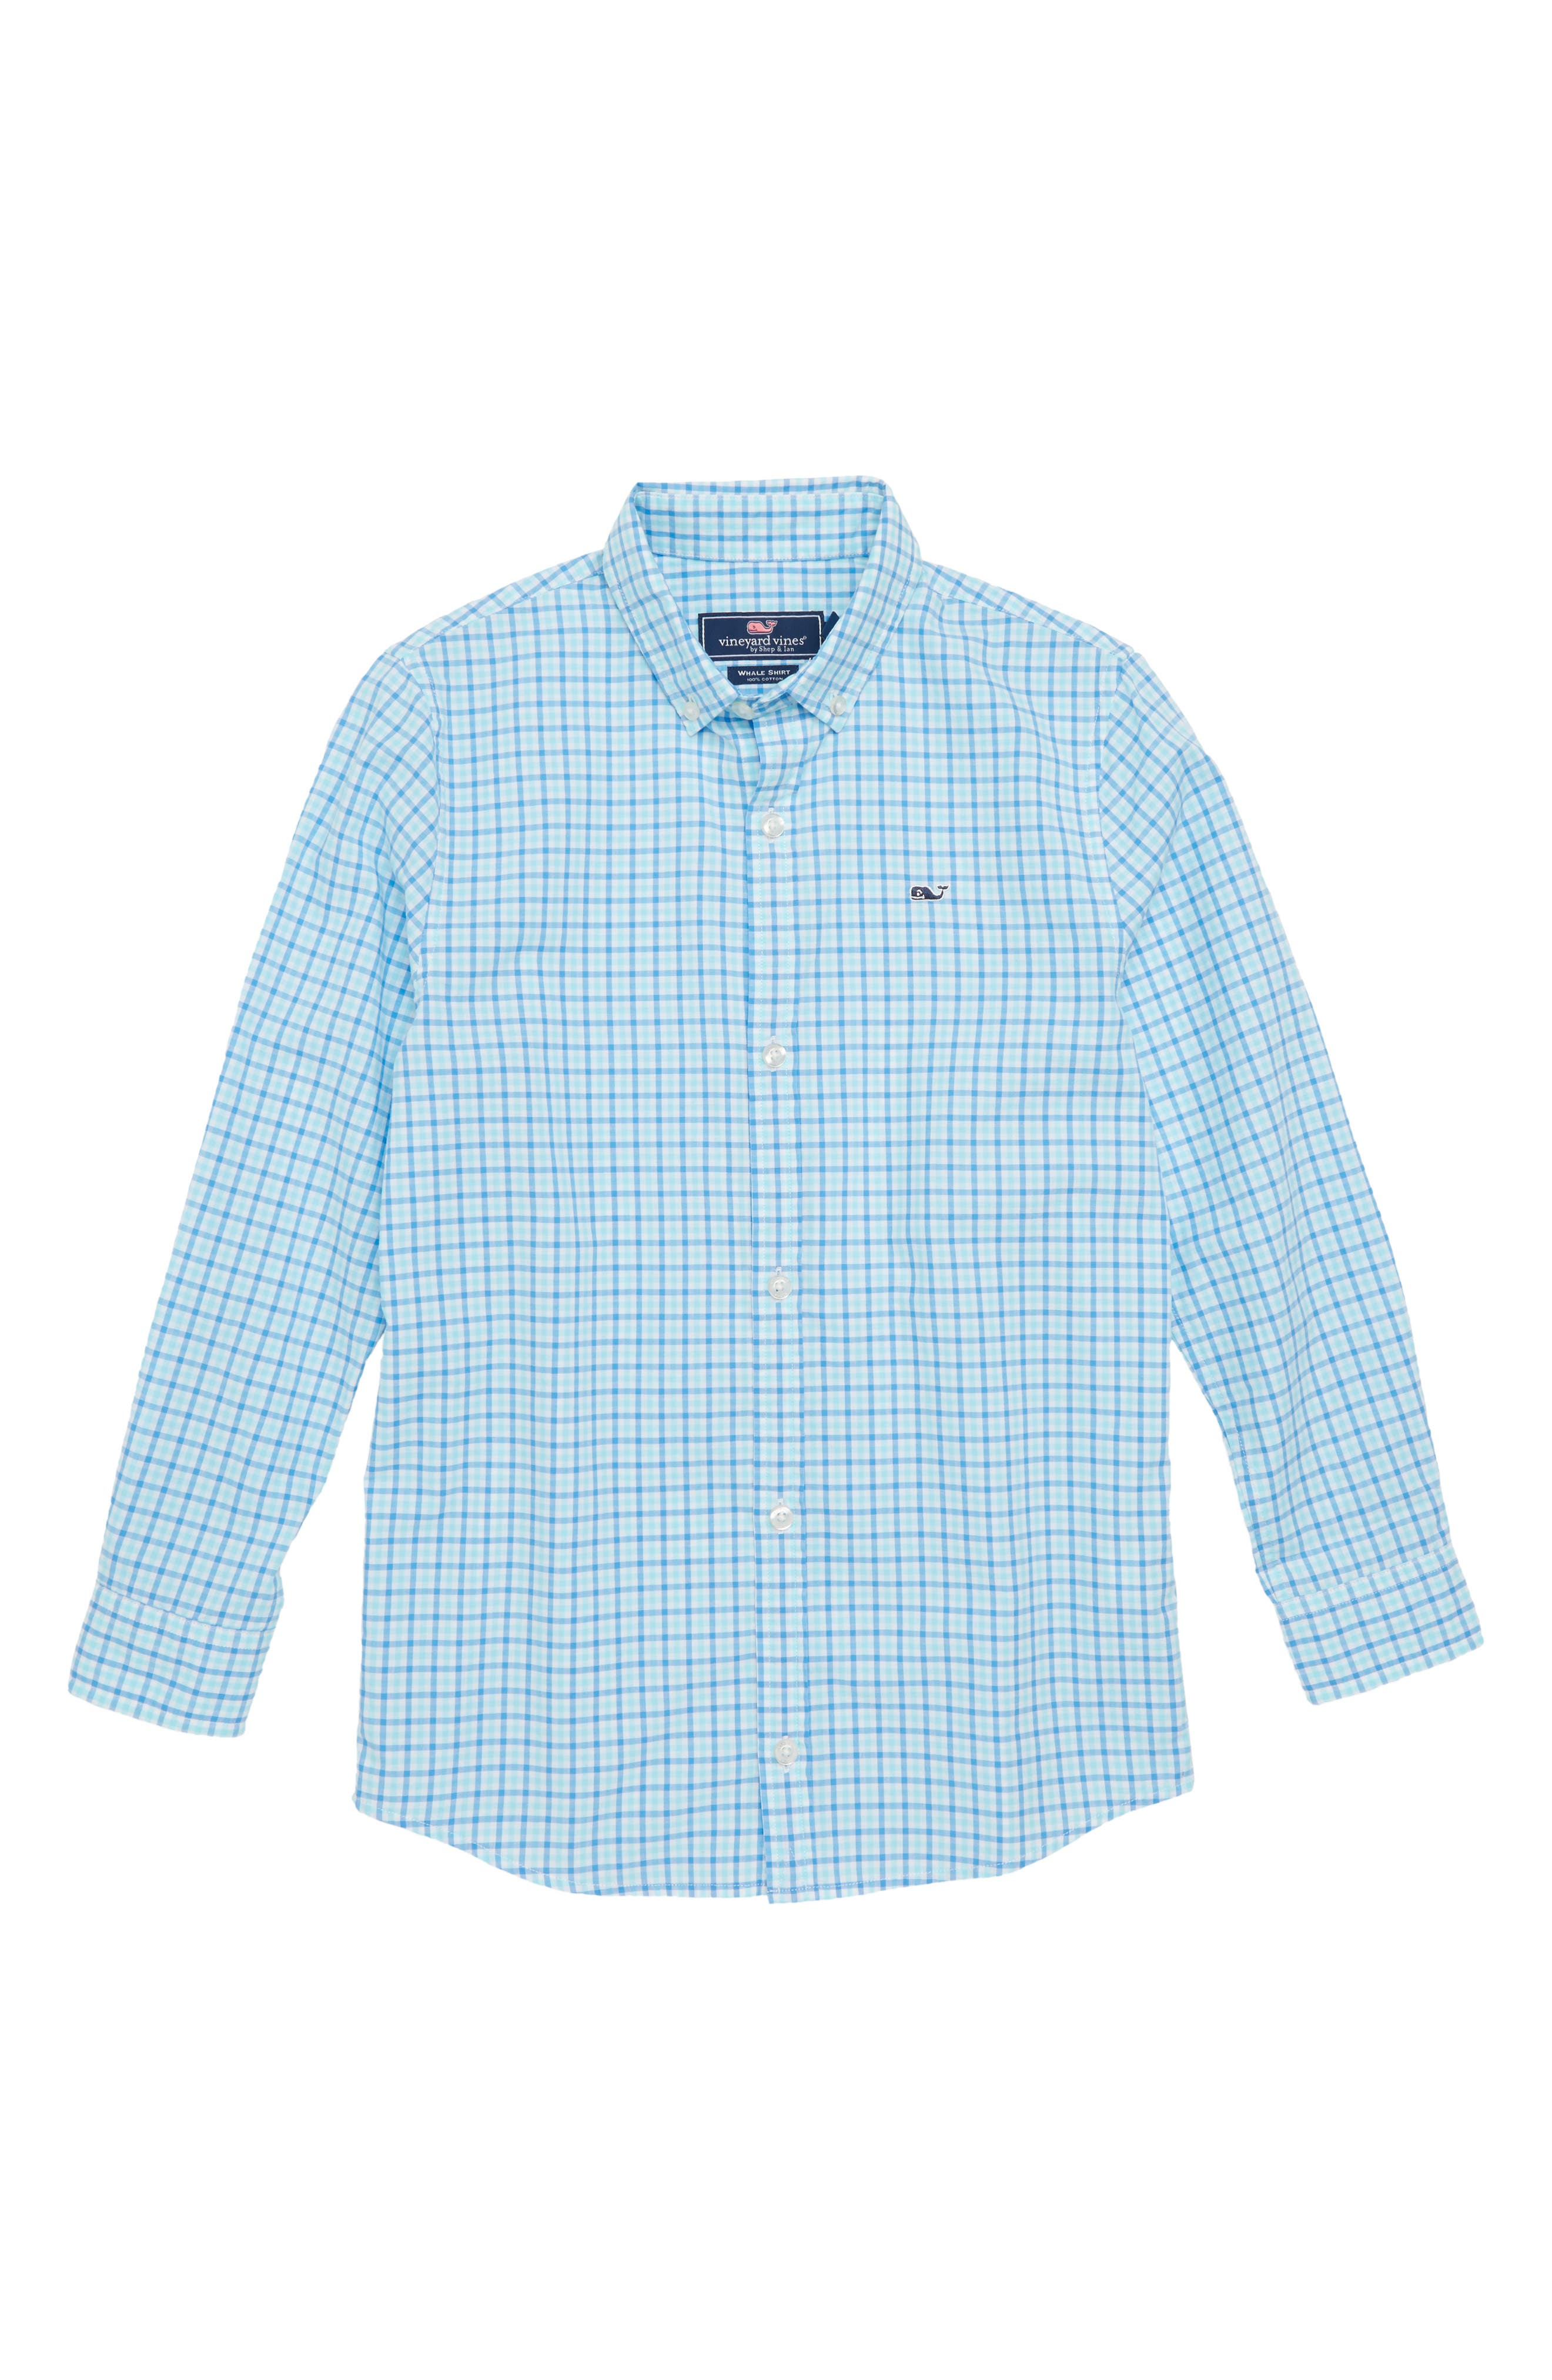 Point Gammon Gingham Whale Shirt,                             Main thumbnail 1, color,                             437